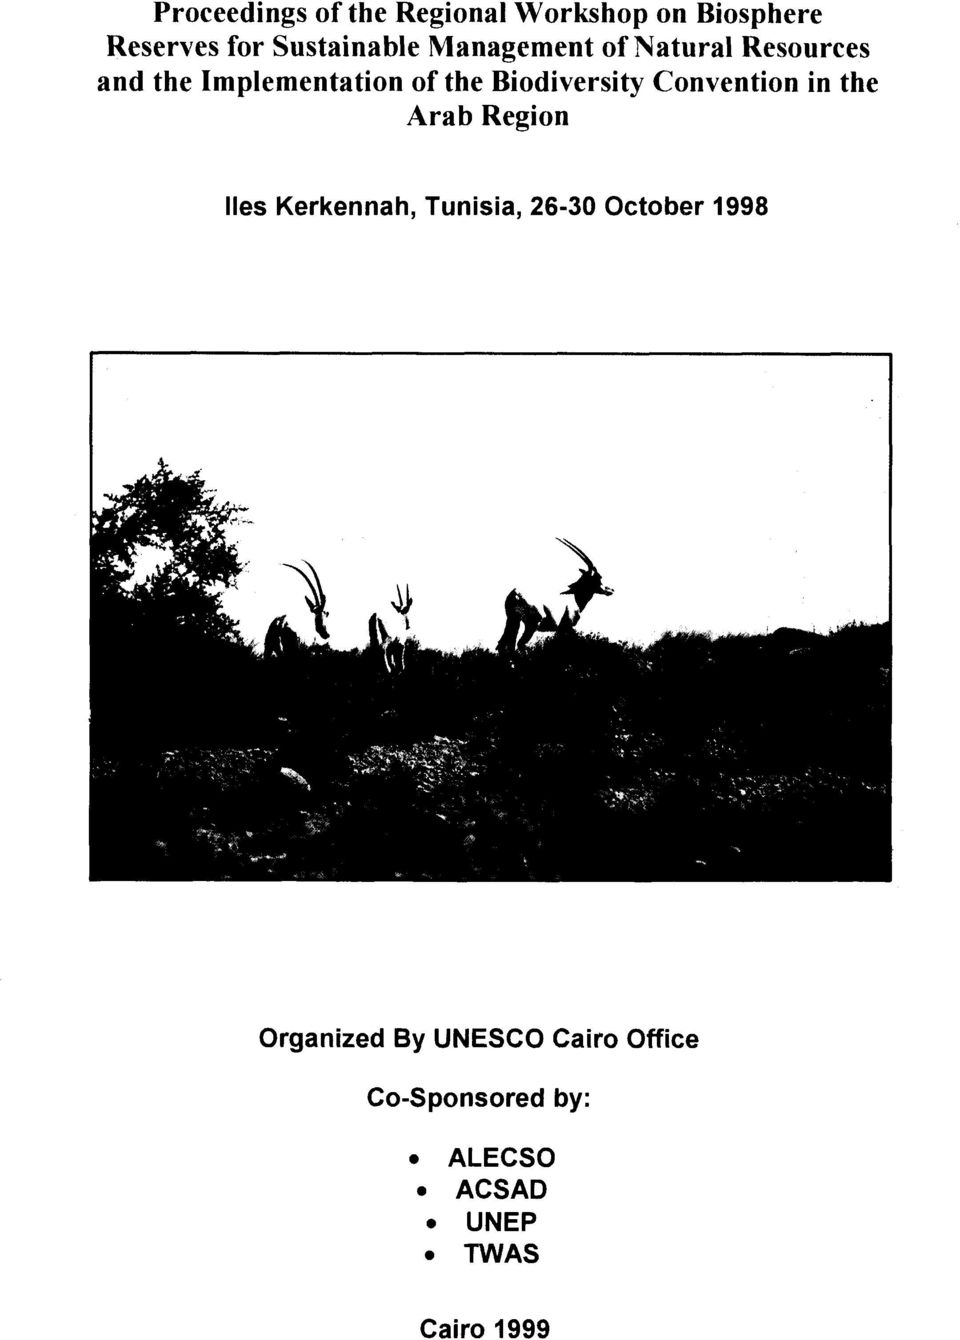 Convention in the Arab Region lies Kerkennah, Tunisia, 26-30 October 1998